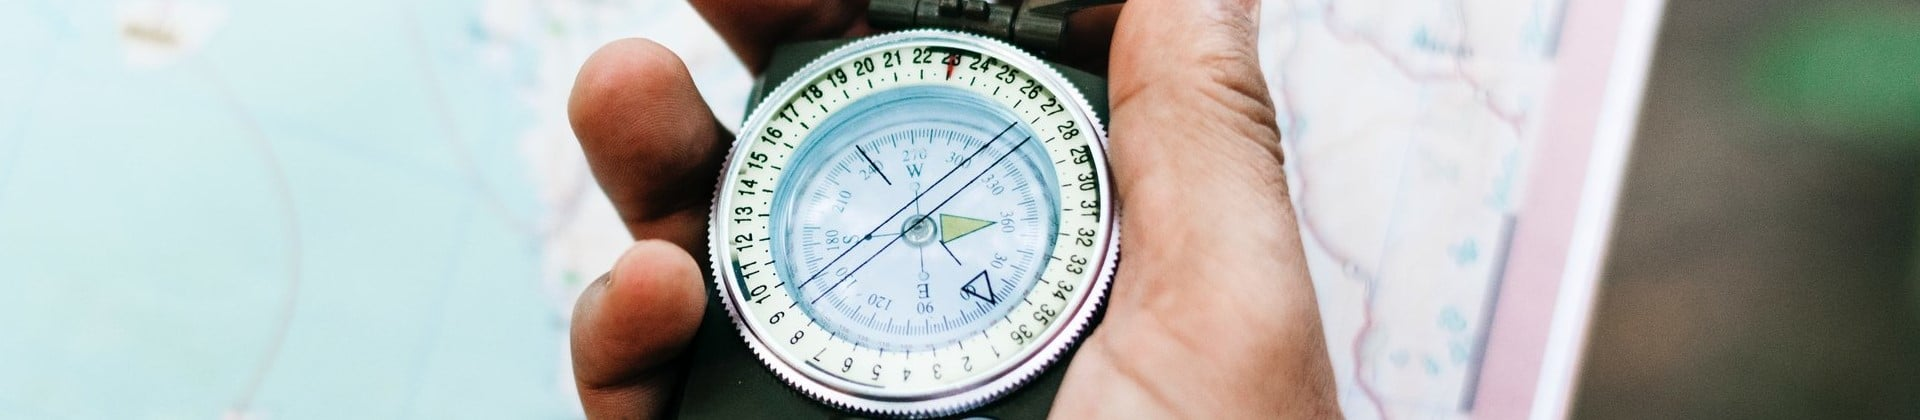 Best Compasses for Hiking Reviewed in Detail